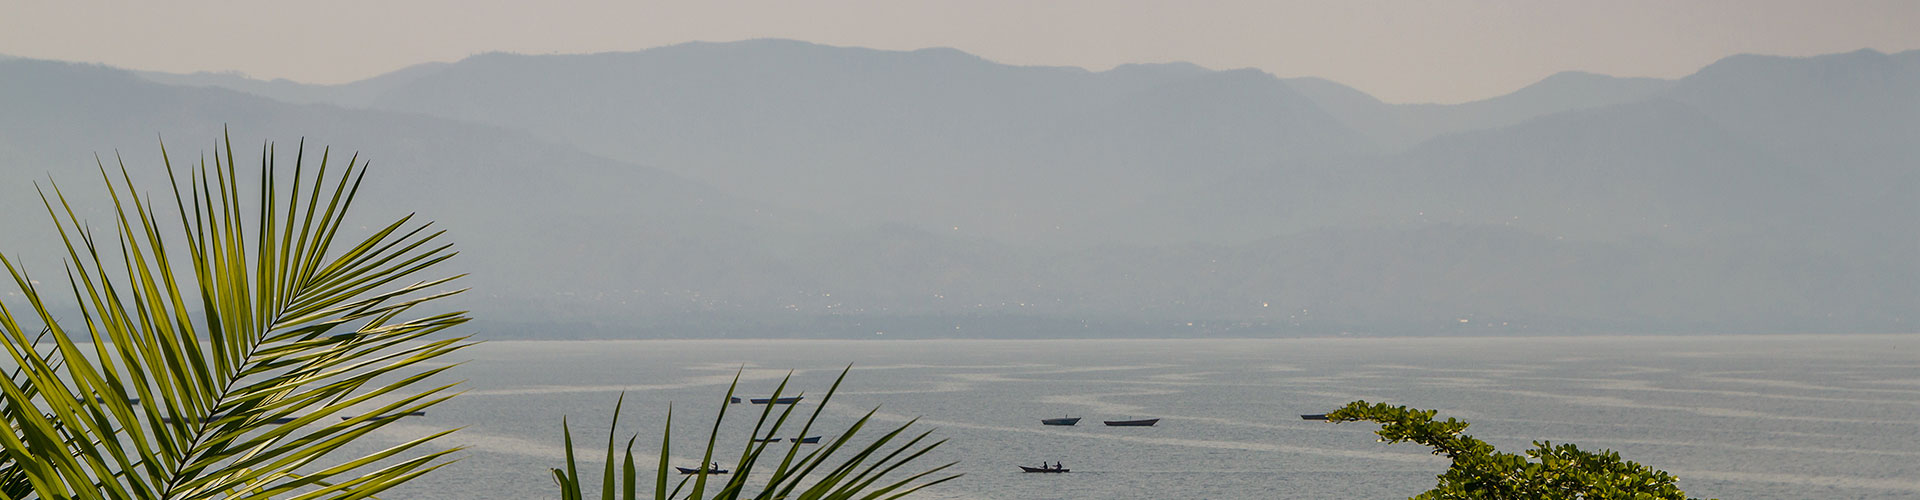 Landmark photograph of Burundi